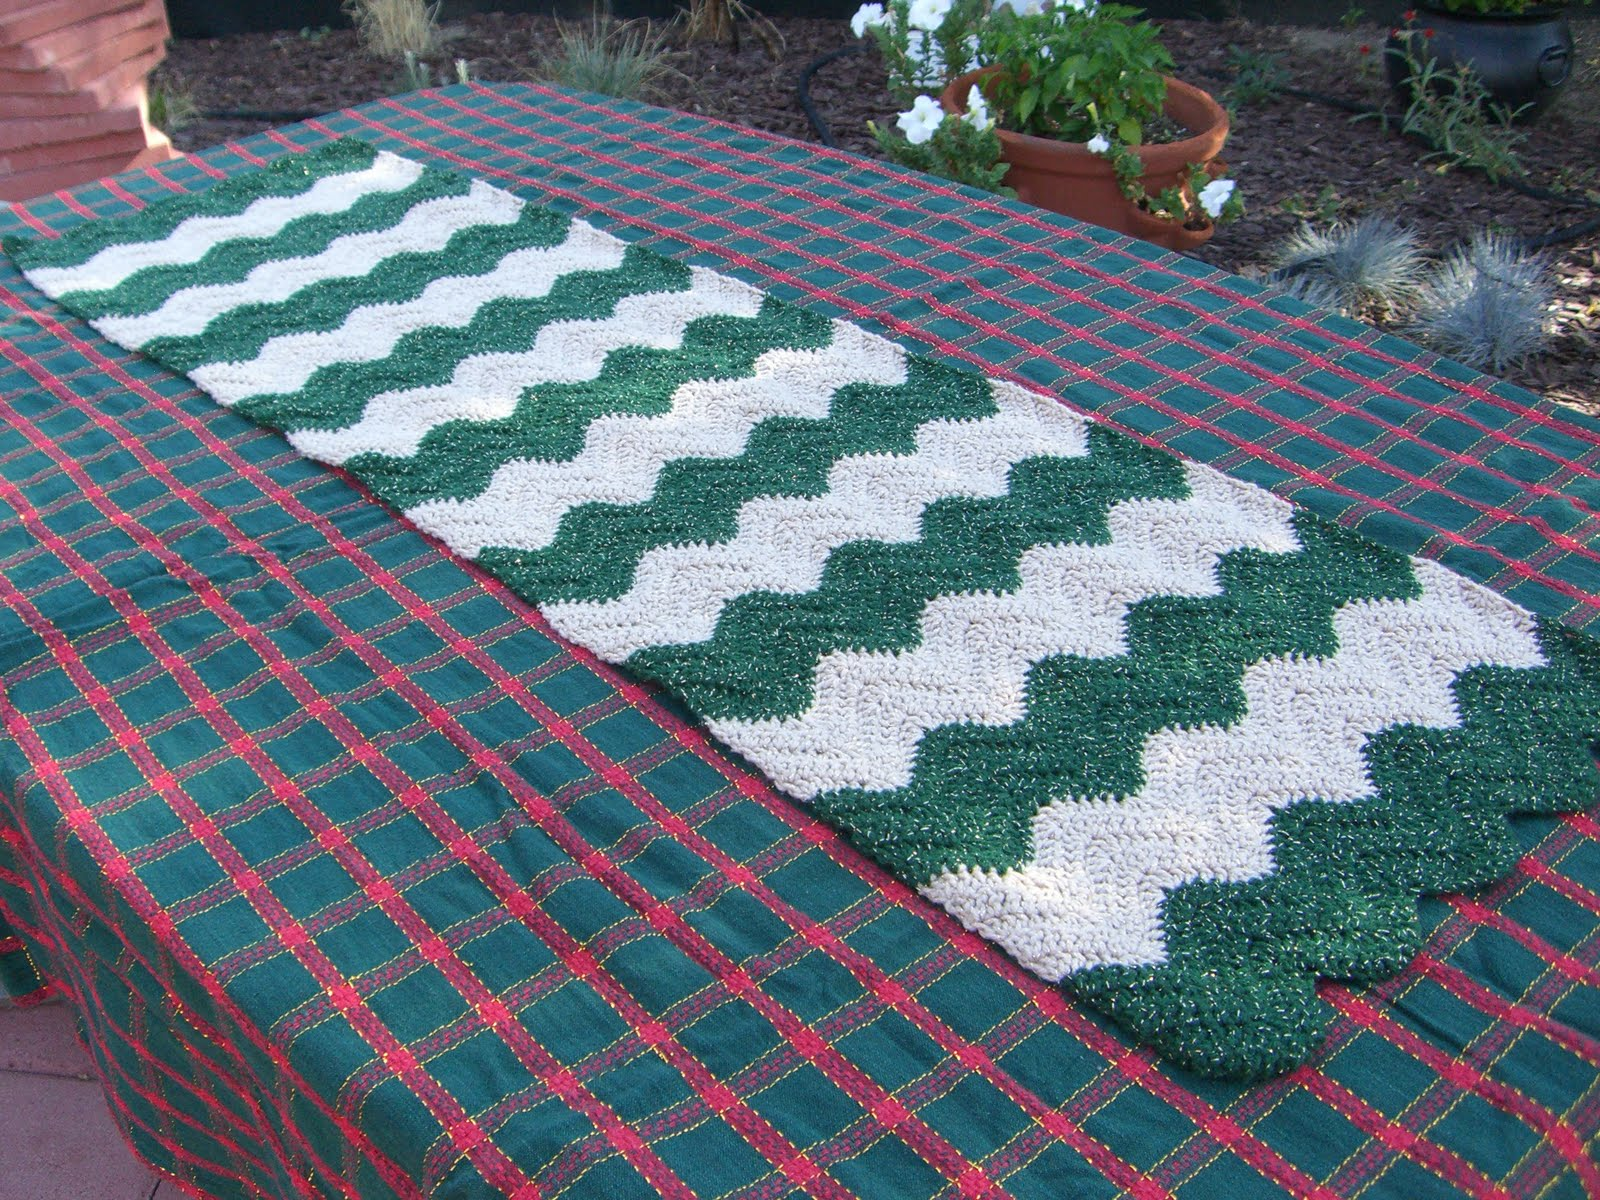 Fun Crafts For All: Crochet Table Runner